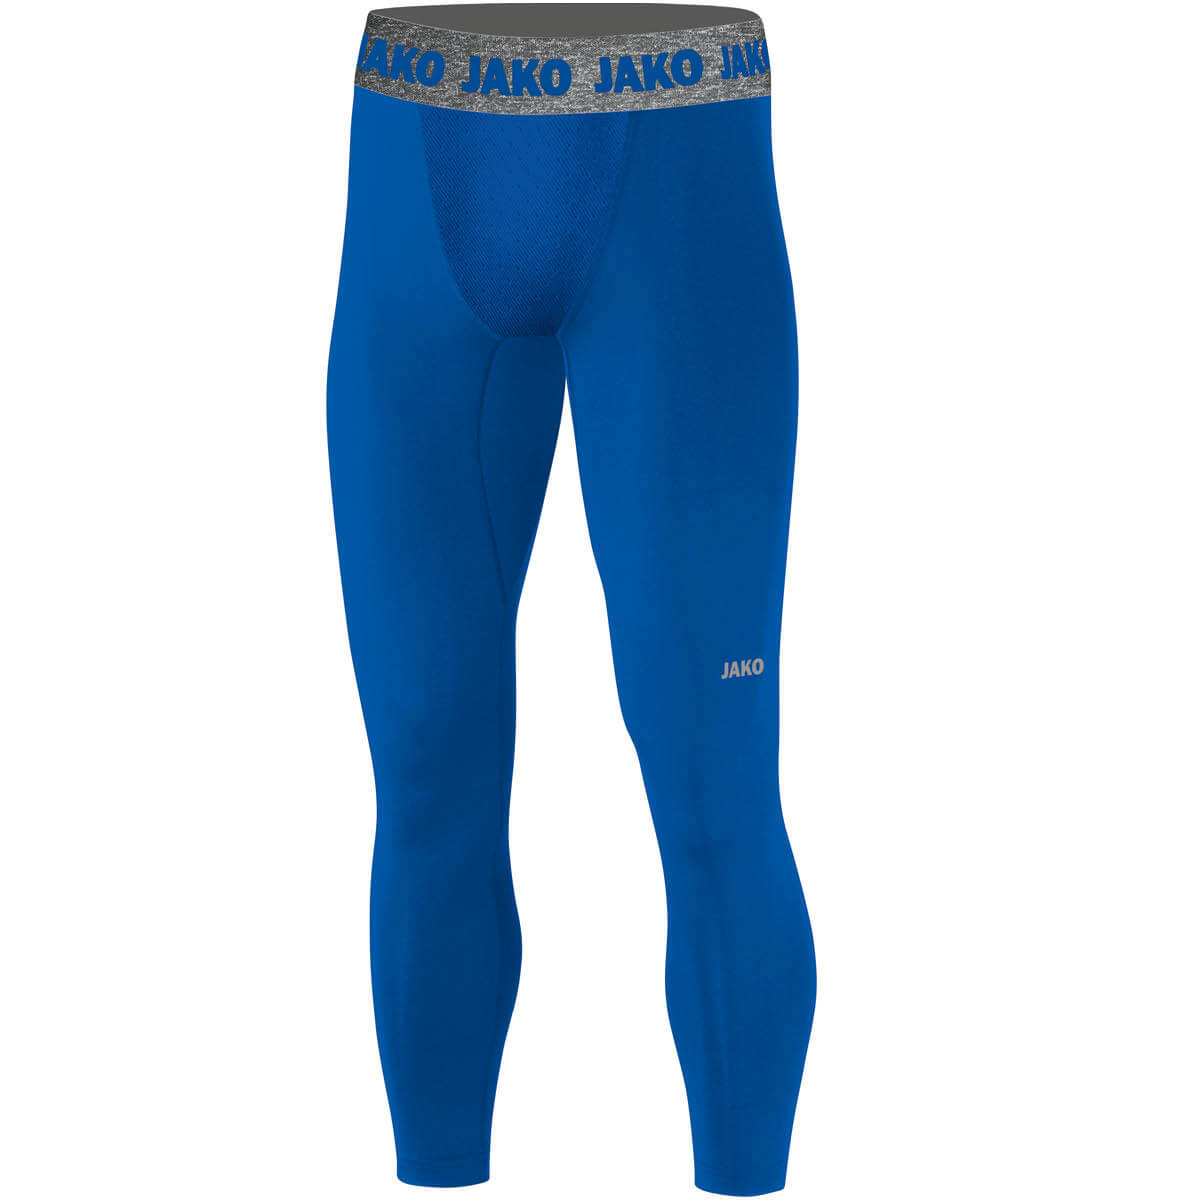 Jako Long Tight Compression 2.0 Herren 8451  | div. Größen / Farben